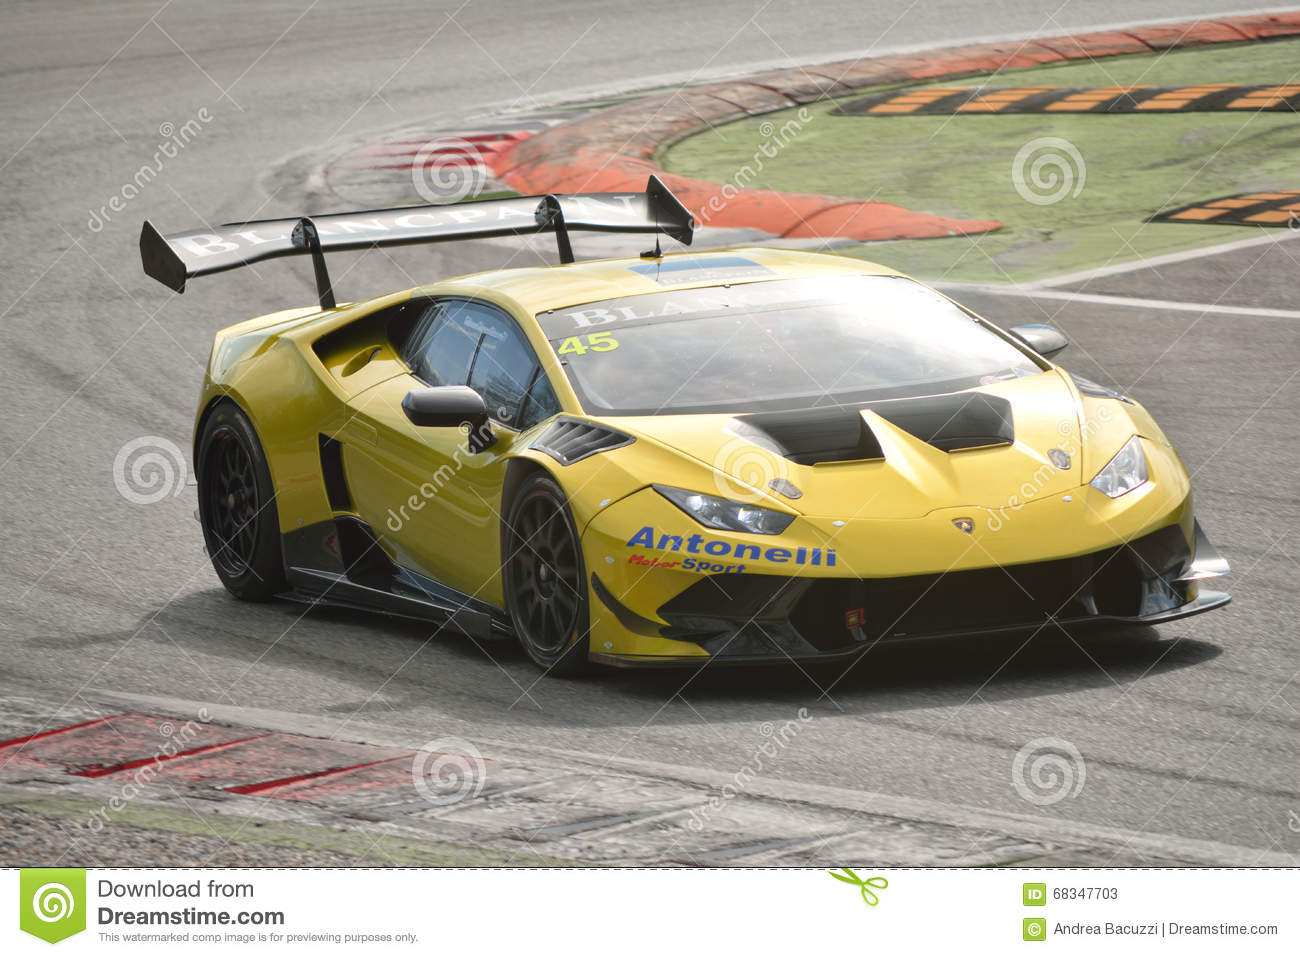 Lamborghini Huracán Super Trofeo 2016 At Monza. Class, Automobile.